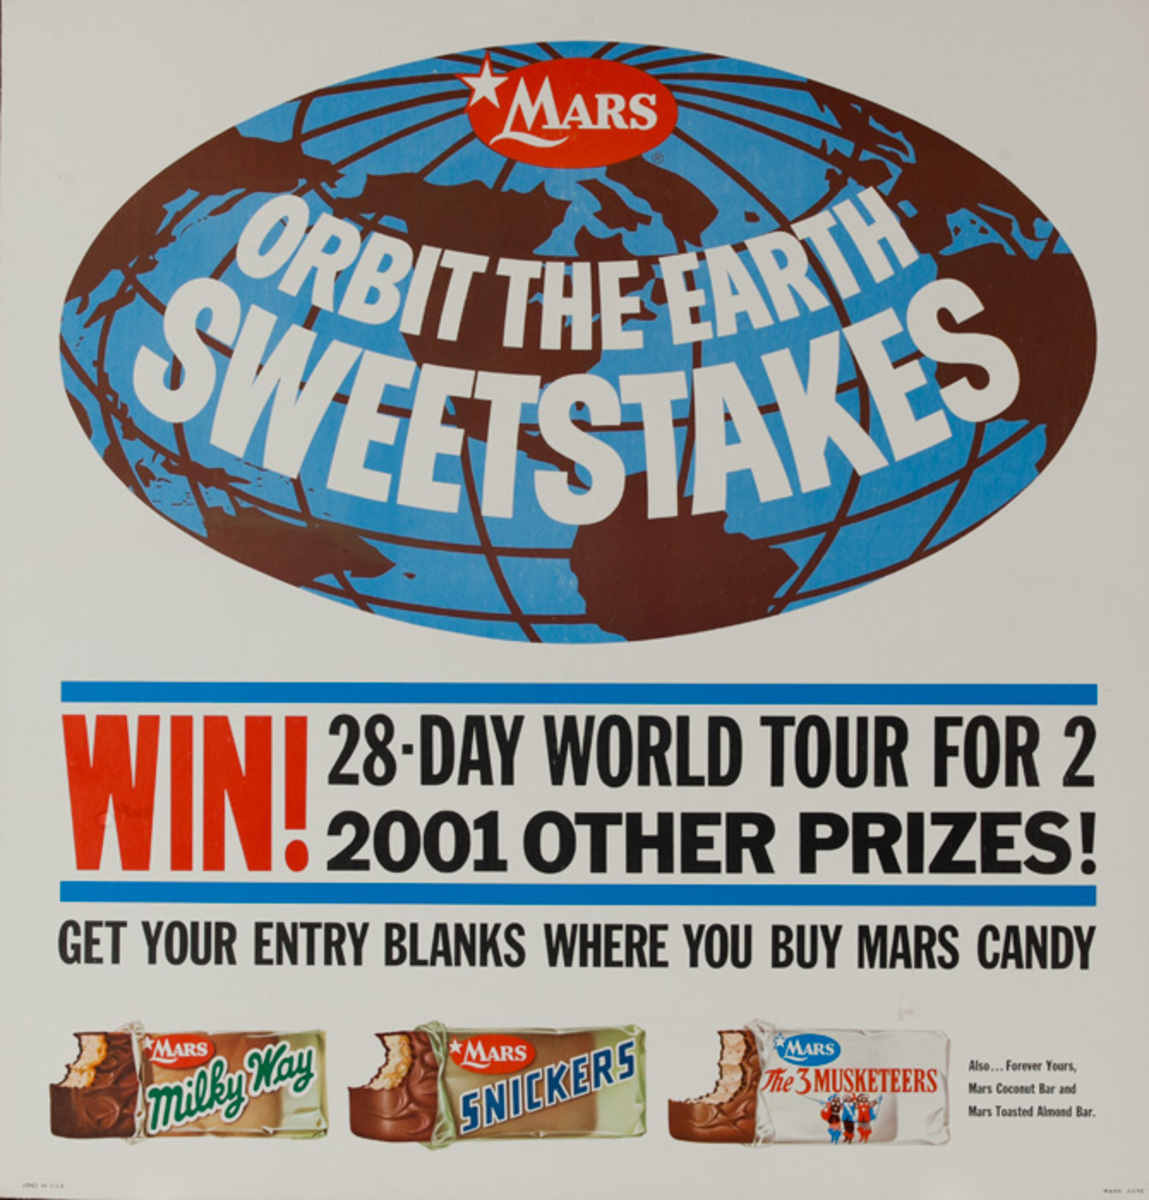 Mars Candy Original Advertising Poster, Orbit the Earth Sweepstakes